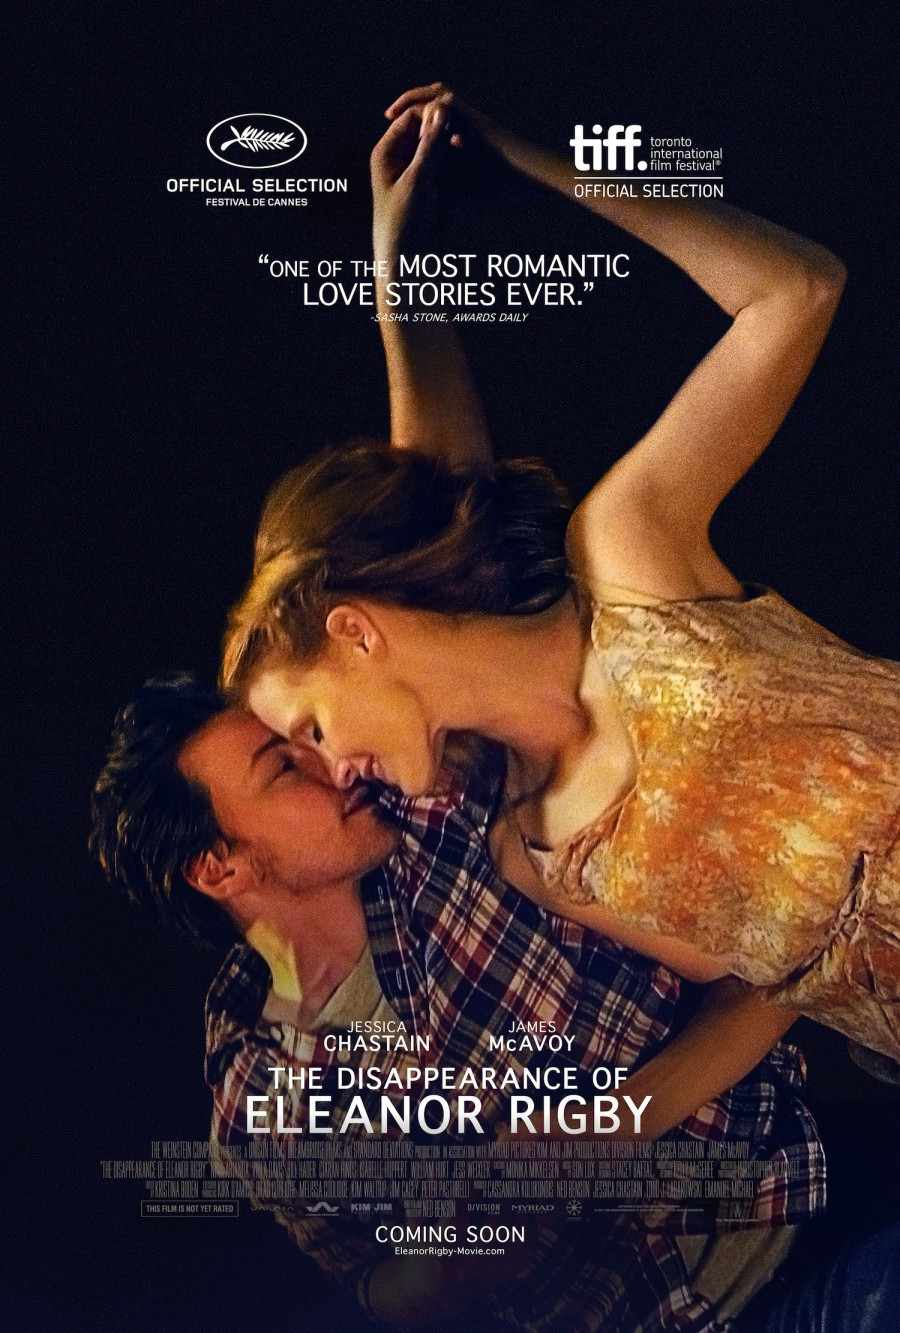 The Disappearance of Eleanor Rigby Trailer